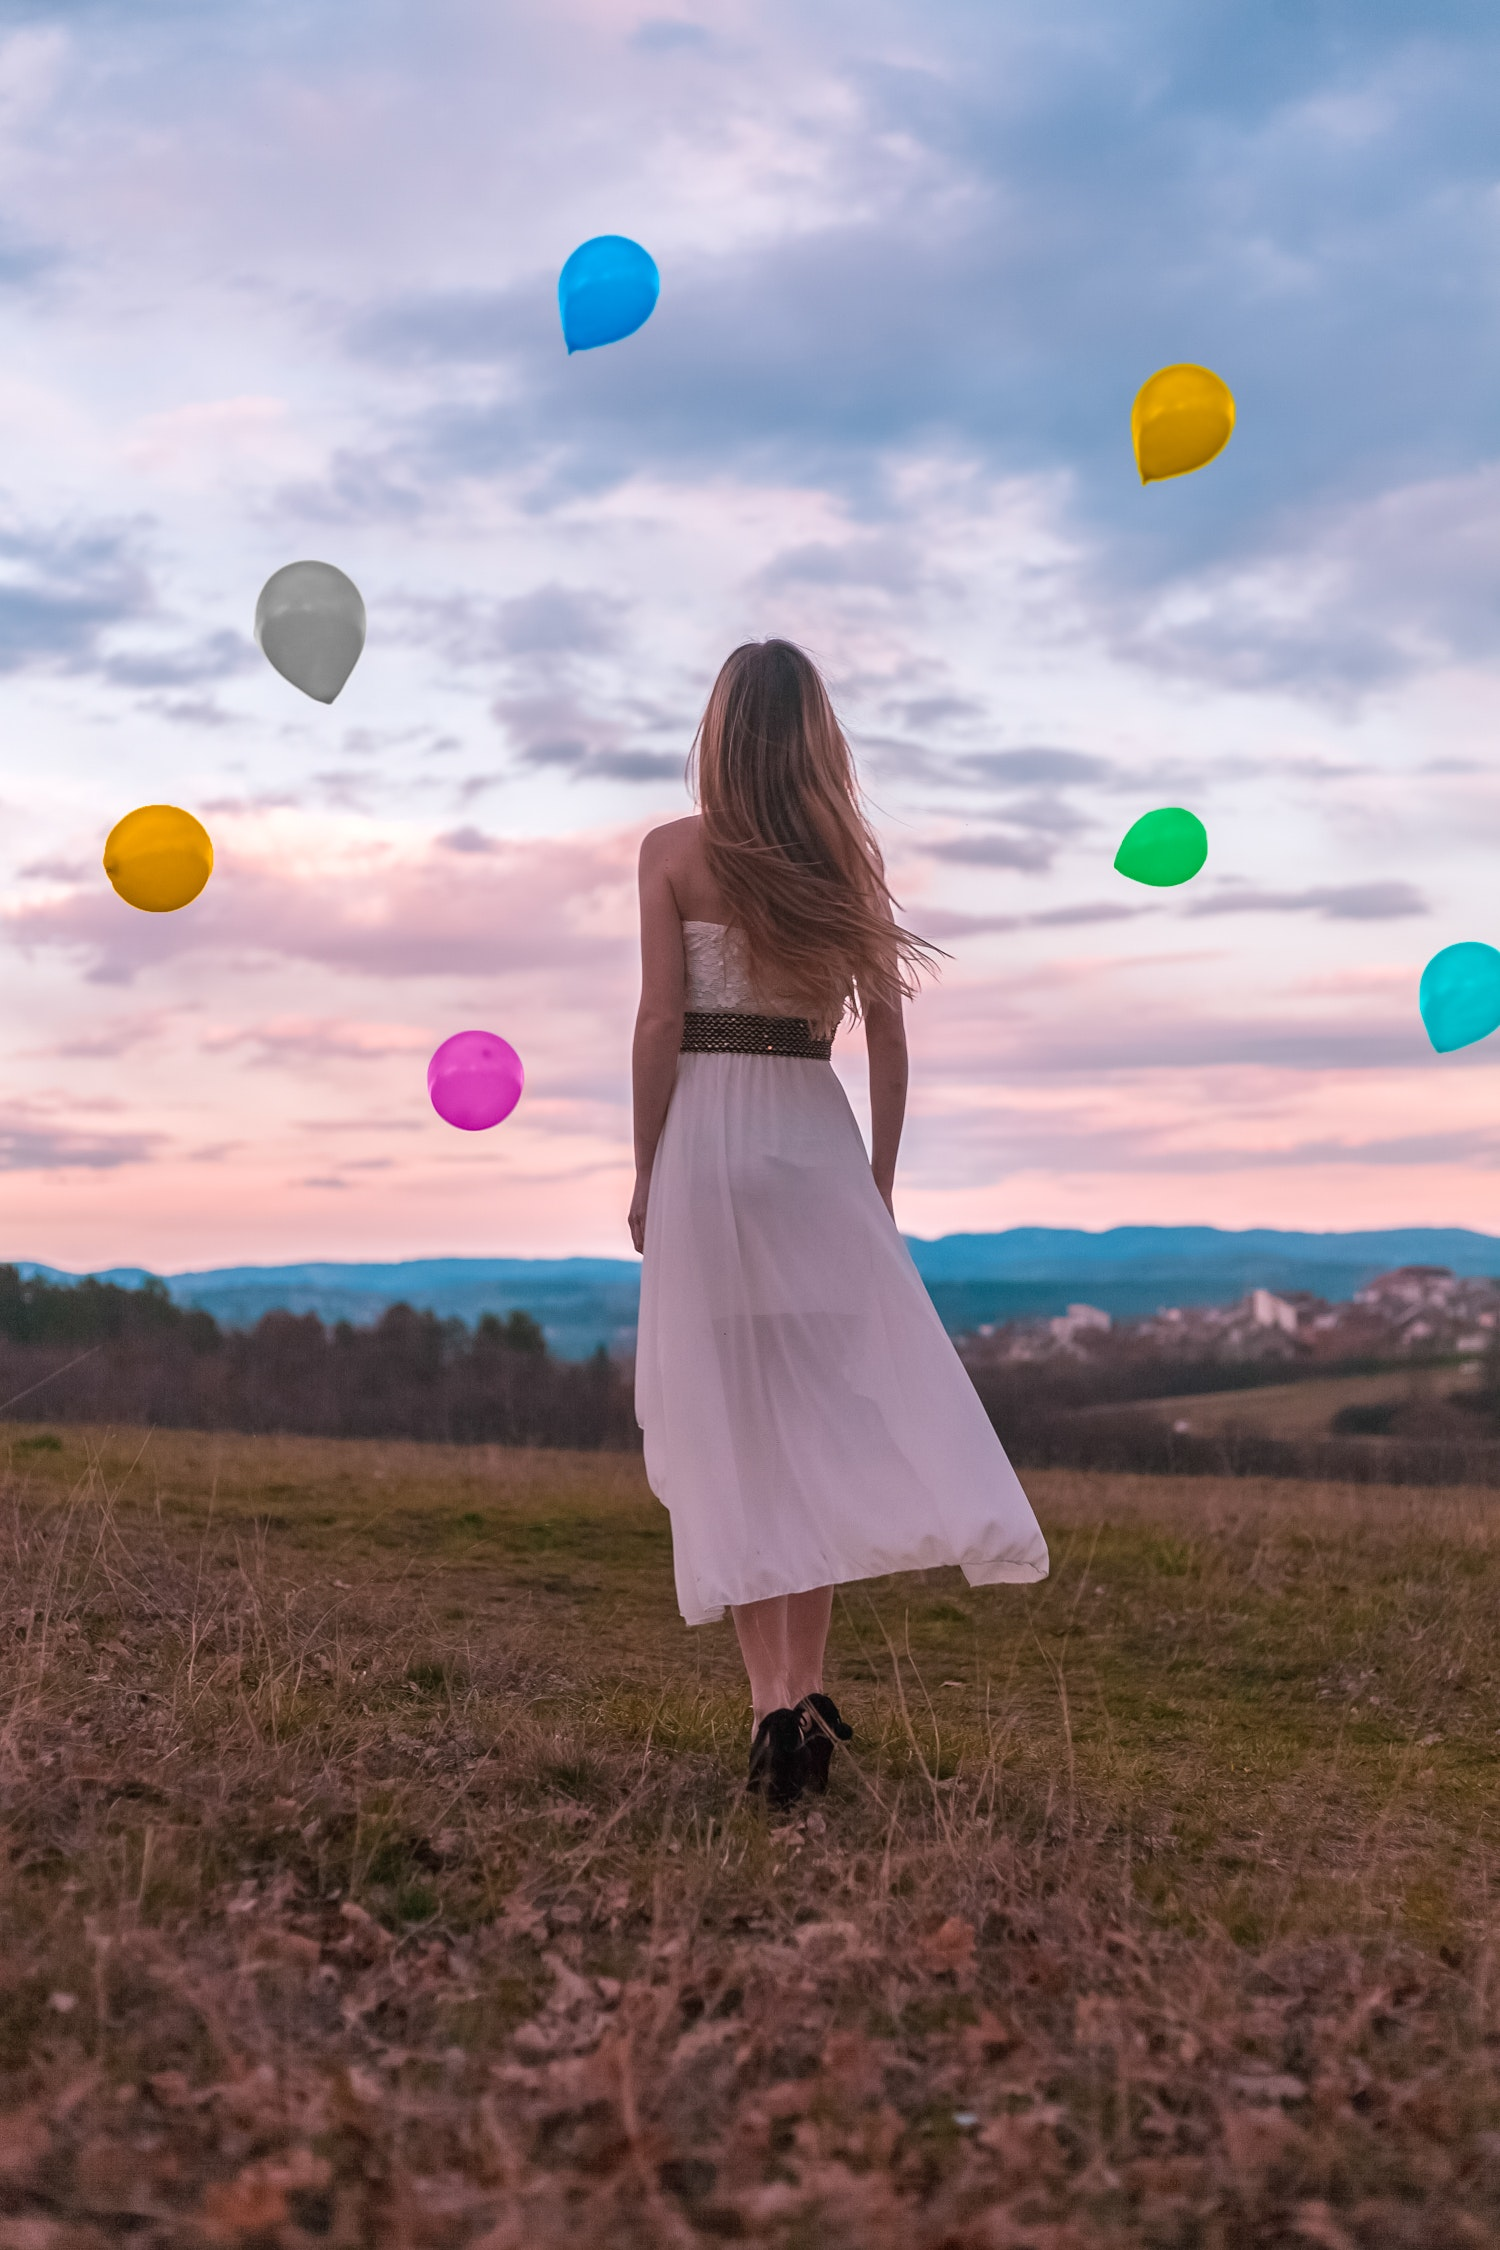 Woman in white dress looking at the balloons photo